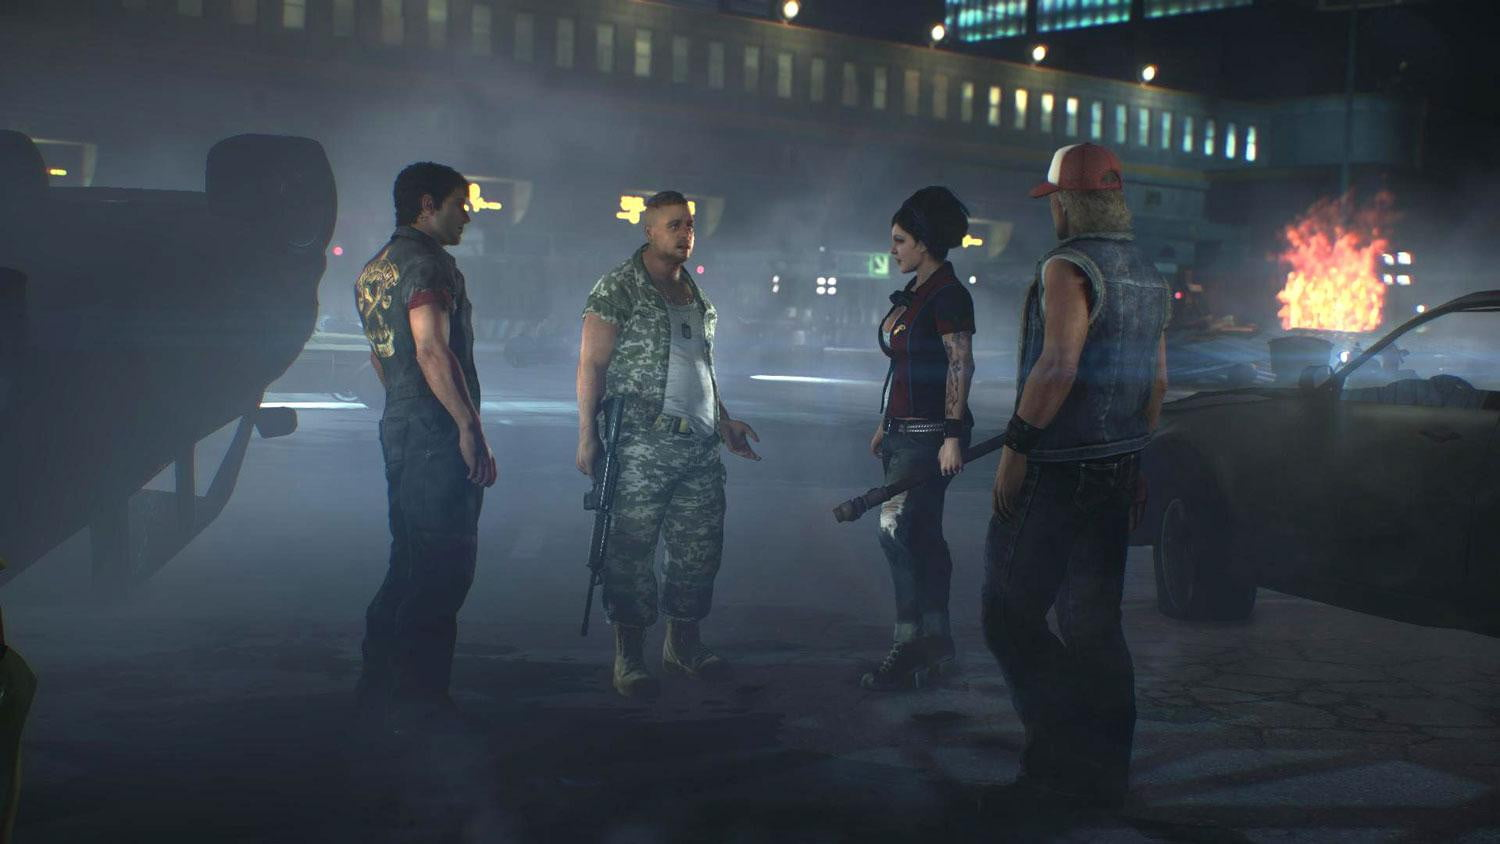 Dead rising 3 review digital trends dead rising 3 screenshot 15 malvernweather Gallery